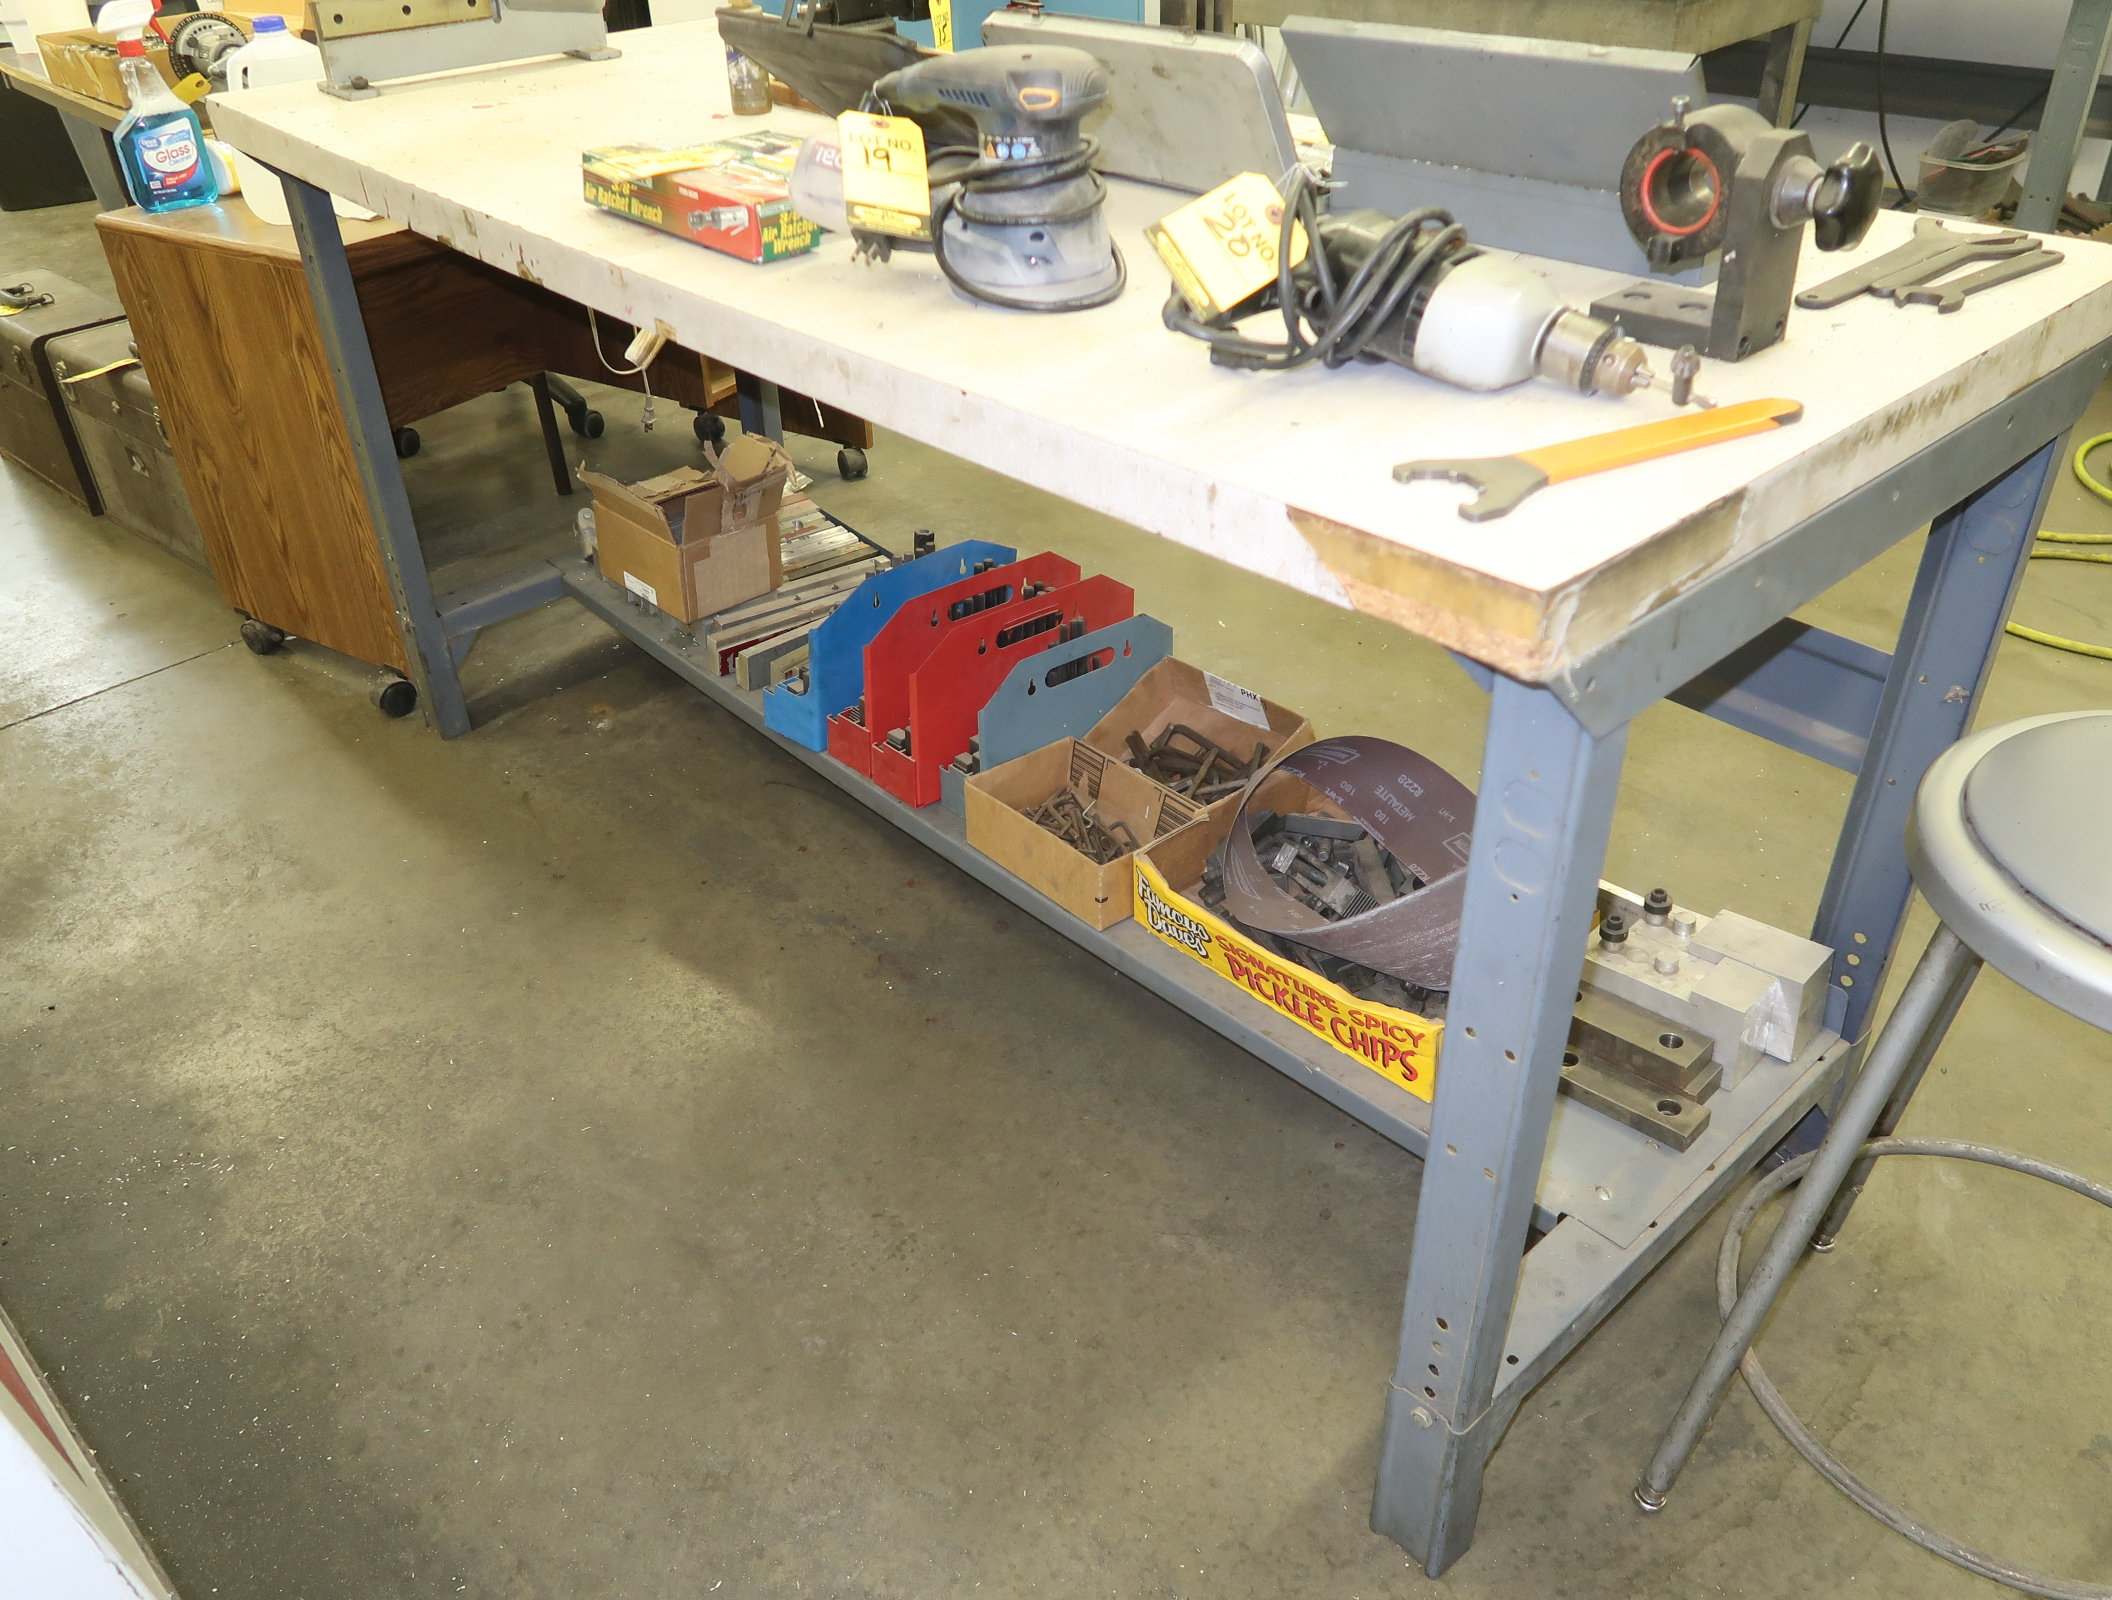 LOT SHOP TABLE W/ TOOL CLAMP KITS, ETC. UNDER TABLE